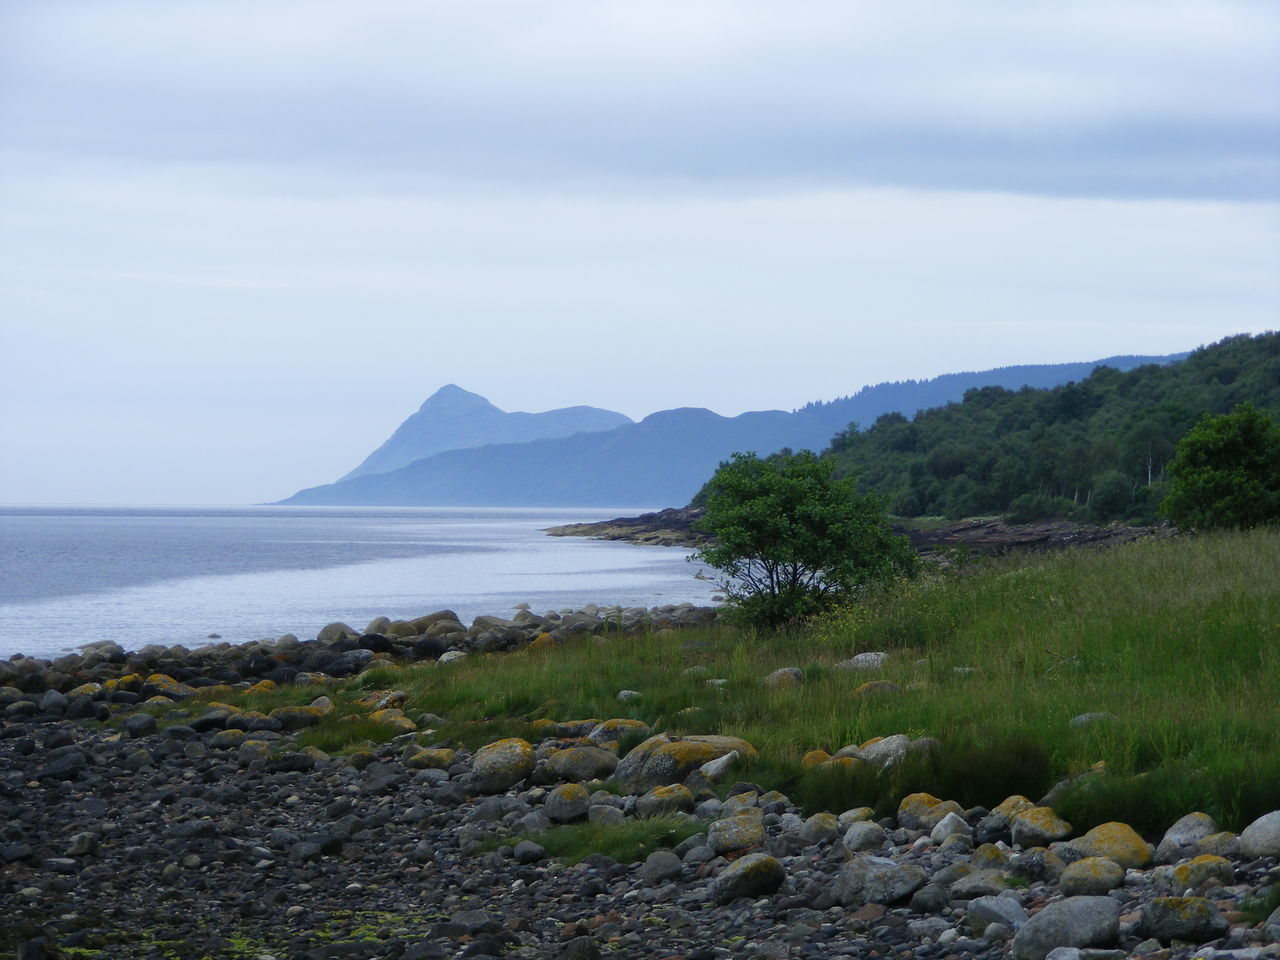 Arran  Beauty In Nature Coastline Idyllic Isle Of Arran  Nature Scenics Scotland Sky Stones Tranquil Scene Tranquility